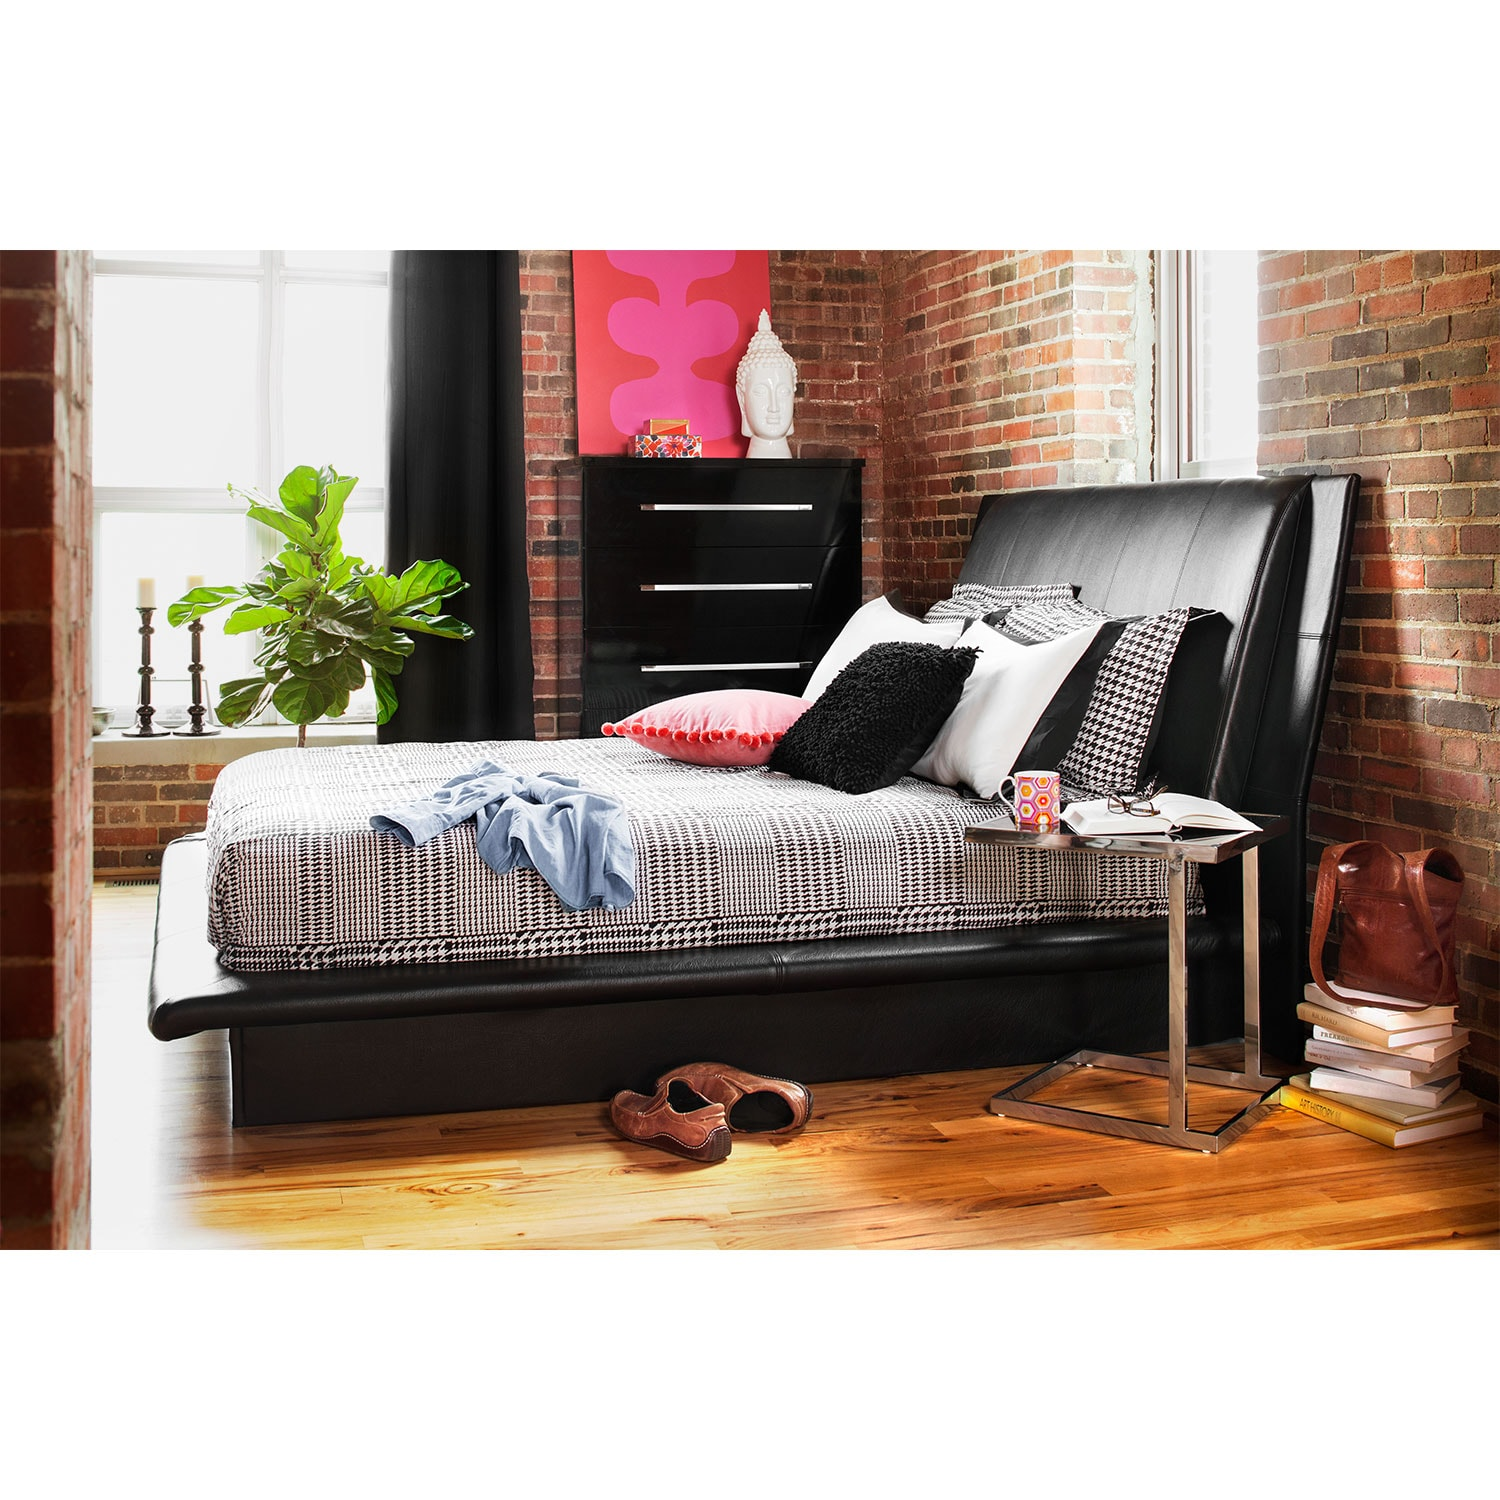 Dimora Queen Upholstered Bed Black